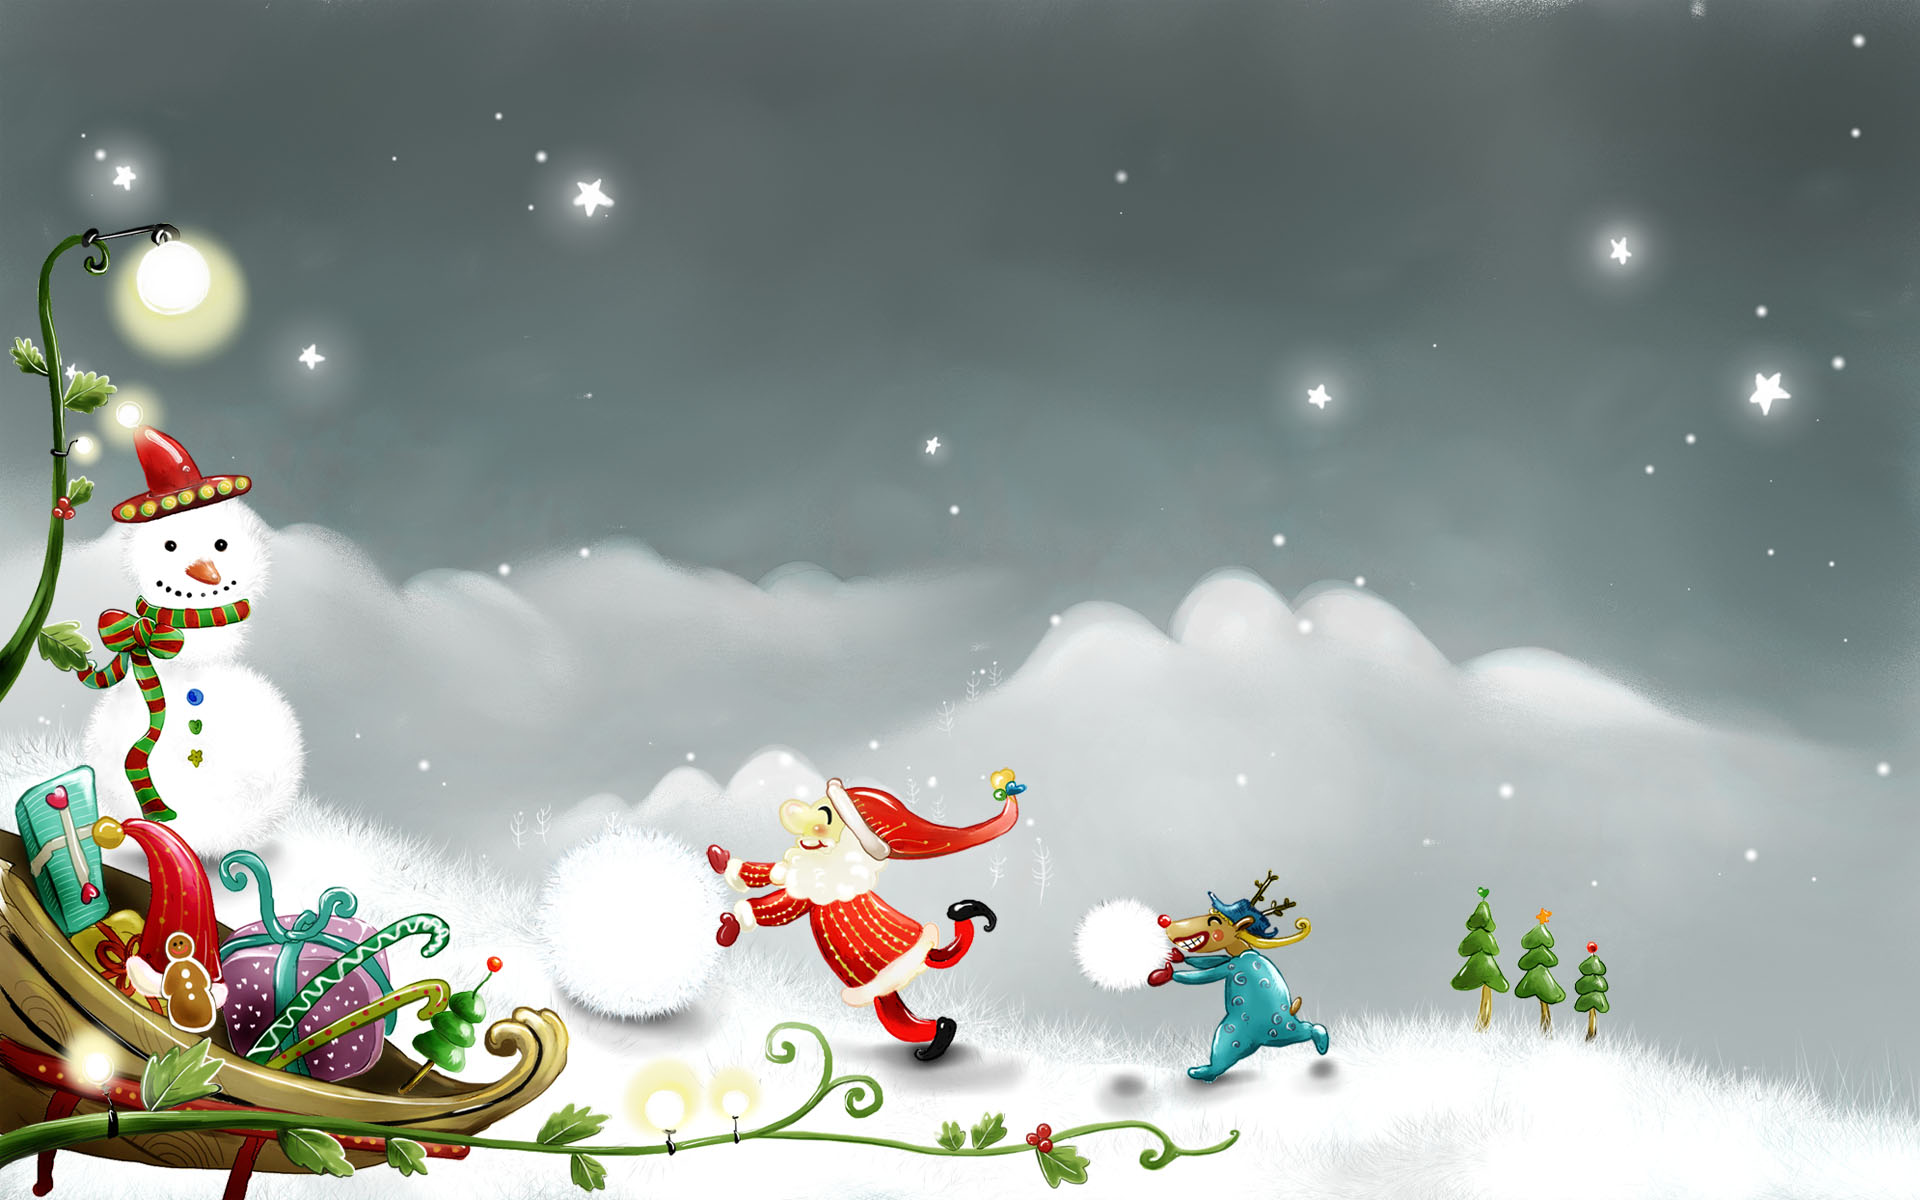 Drawn Creative Christmas Wallpaper